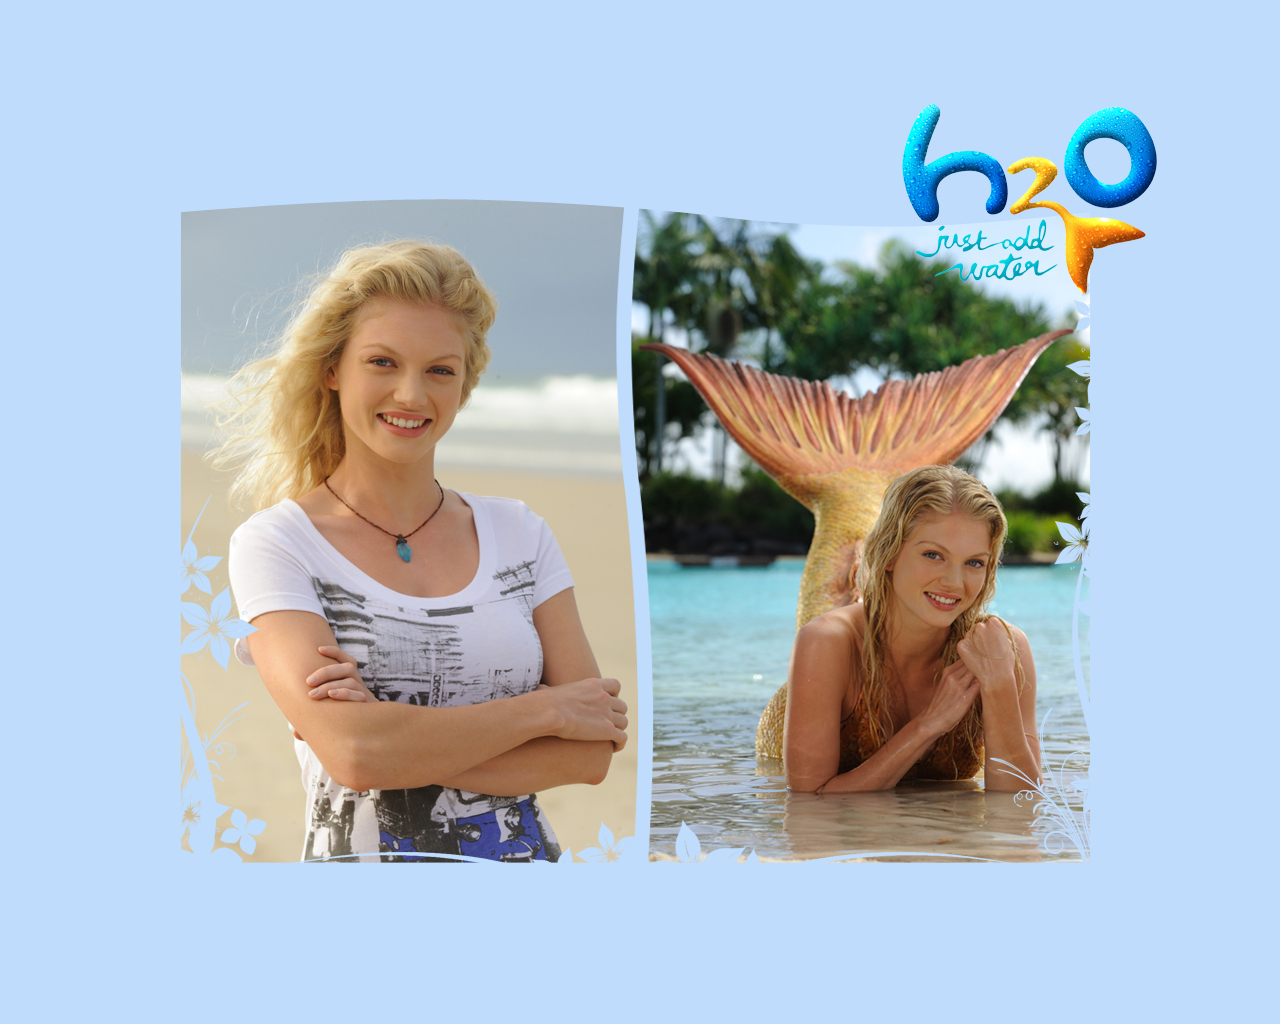 H2o rikki h2o just add water movies t v shows for H20 just add water seasons